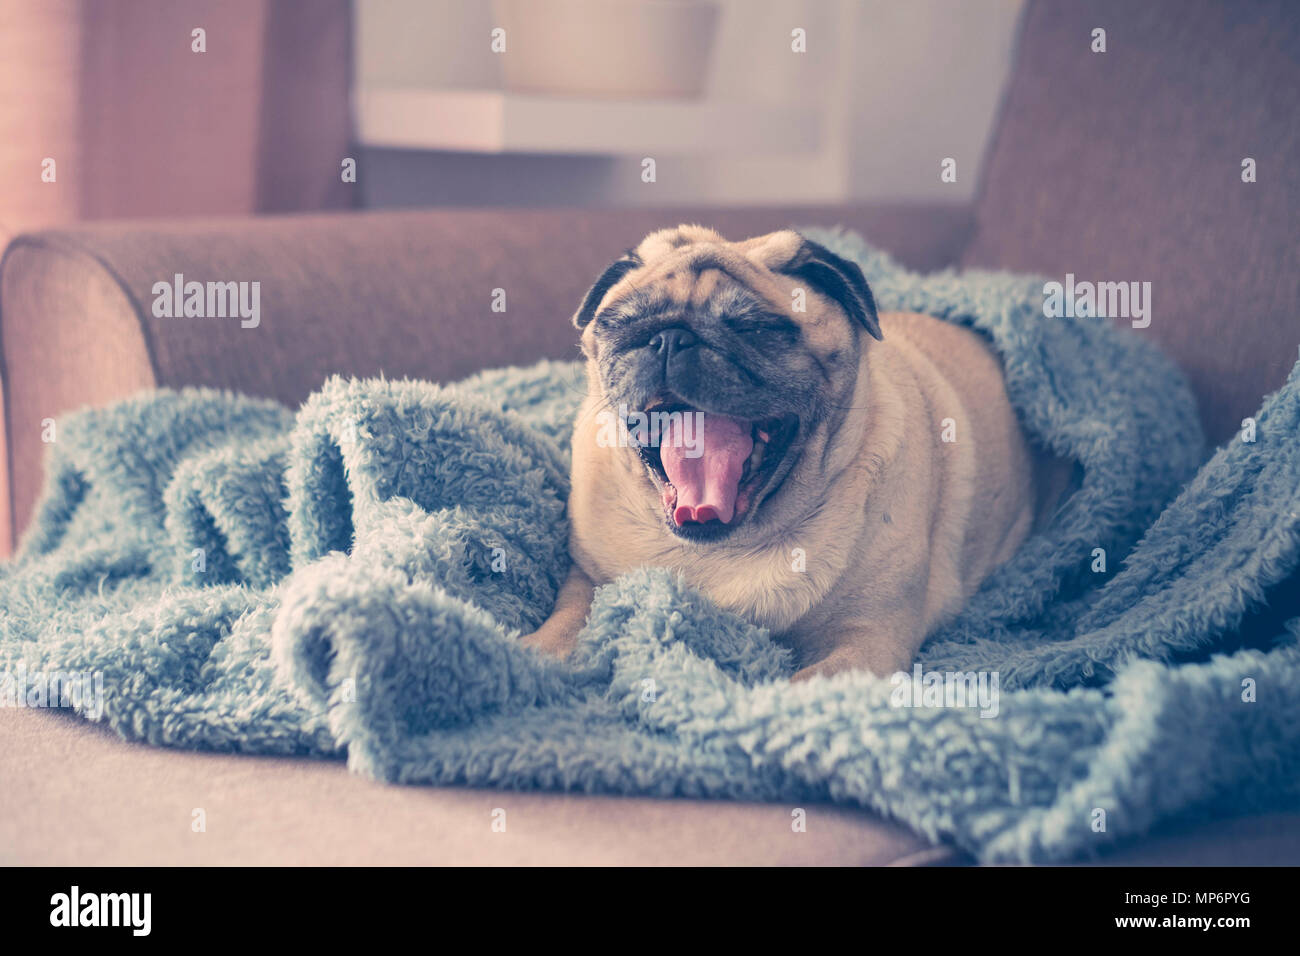 sunday morning time with window light at home for a brown nice funny pug lazy wake up  with open mouth and yawn. tired have to go work concept. - Stock Image